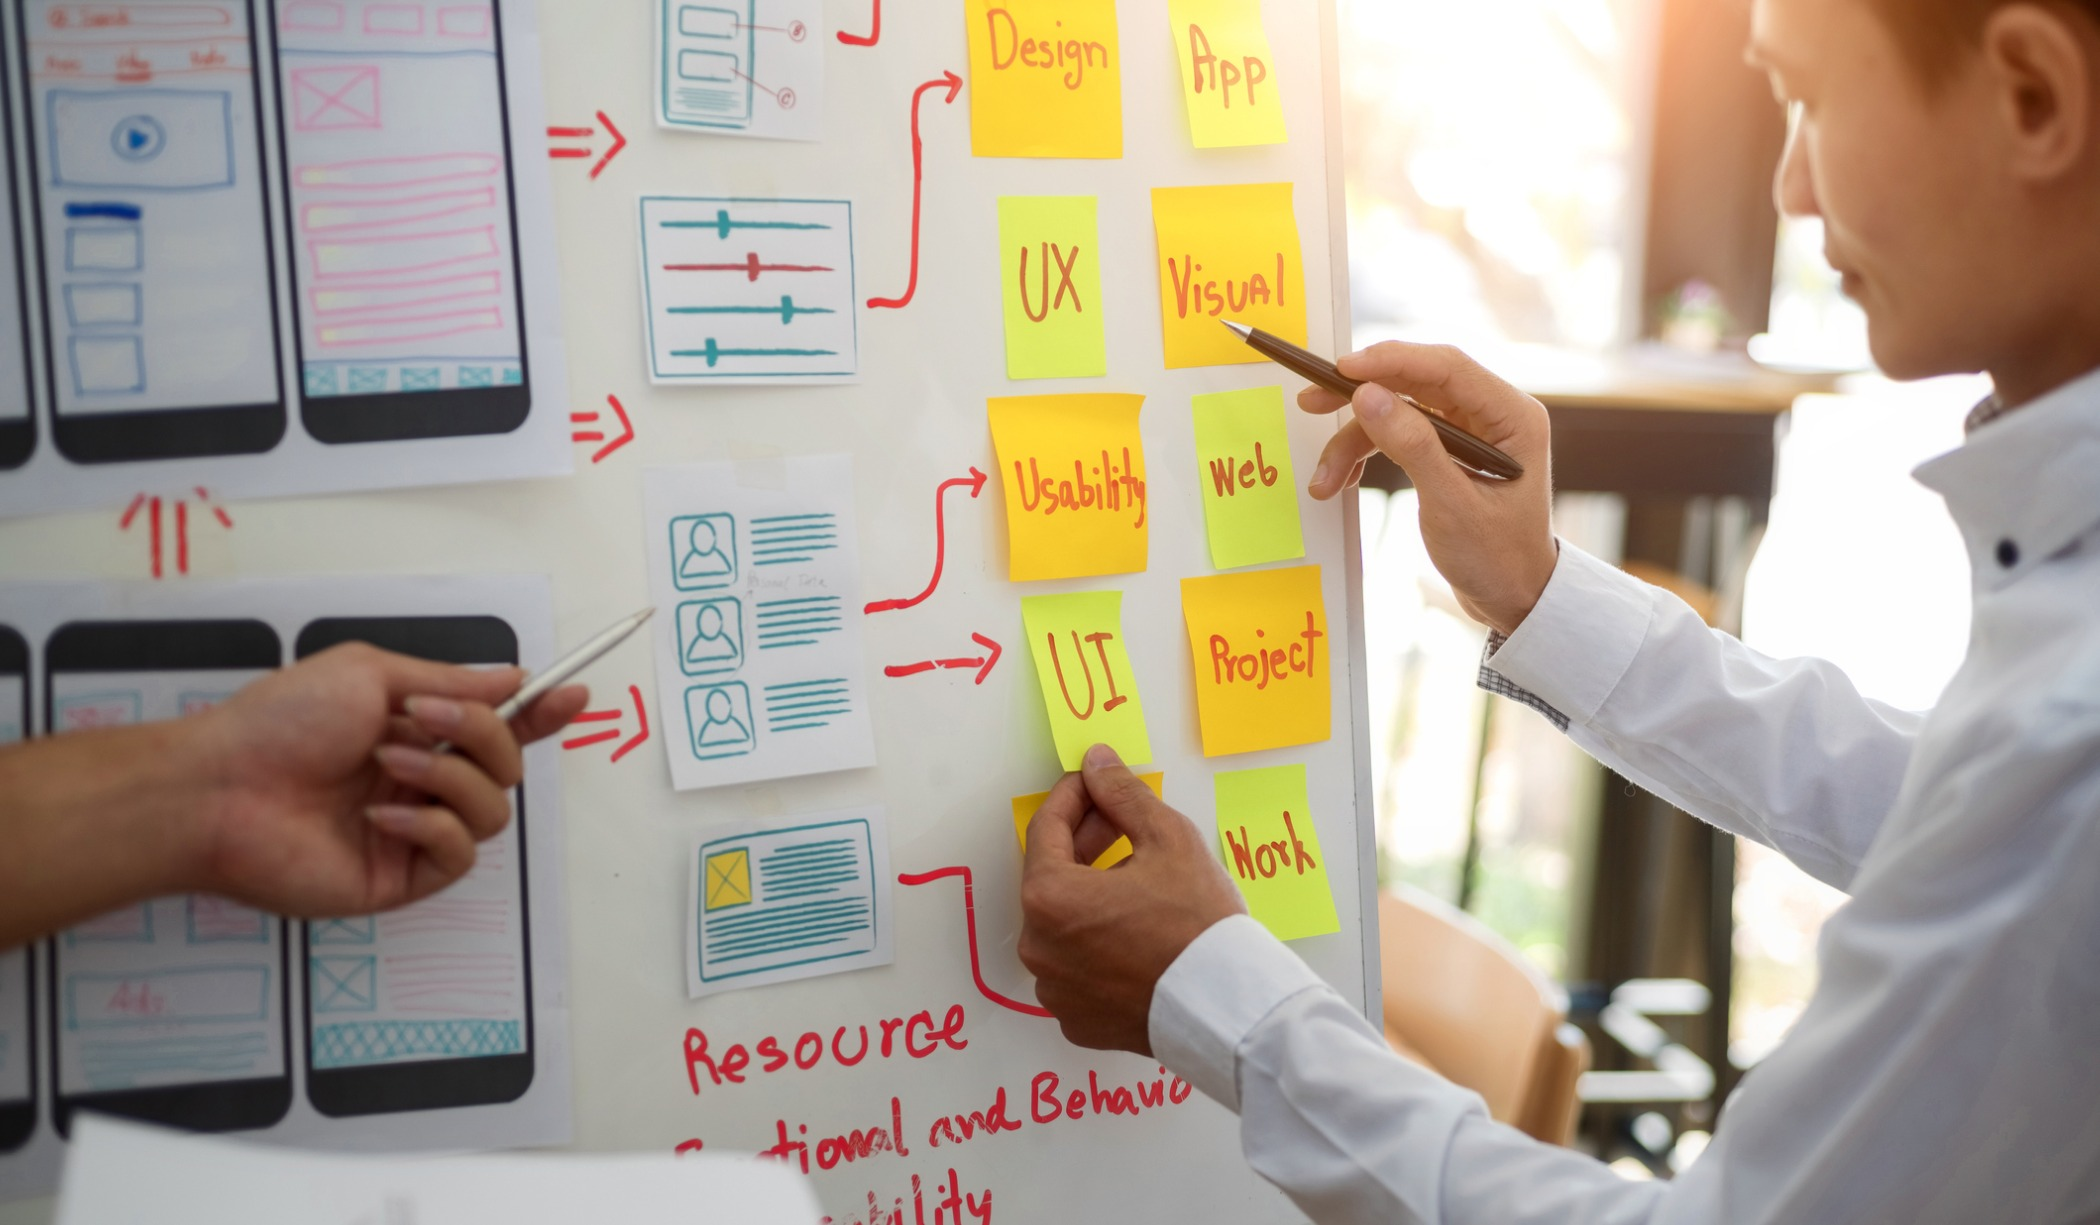 Key Elements of a Good B2B User Experience